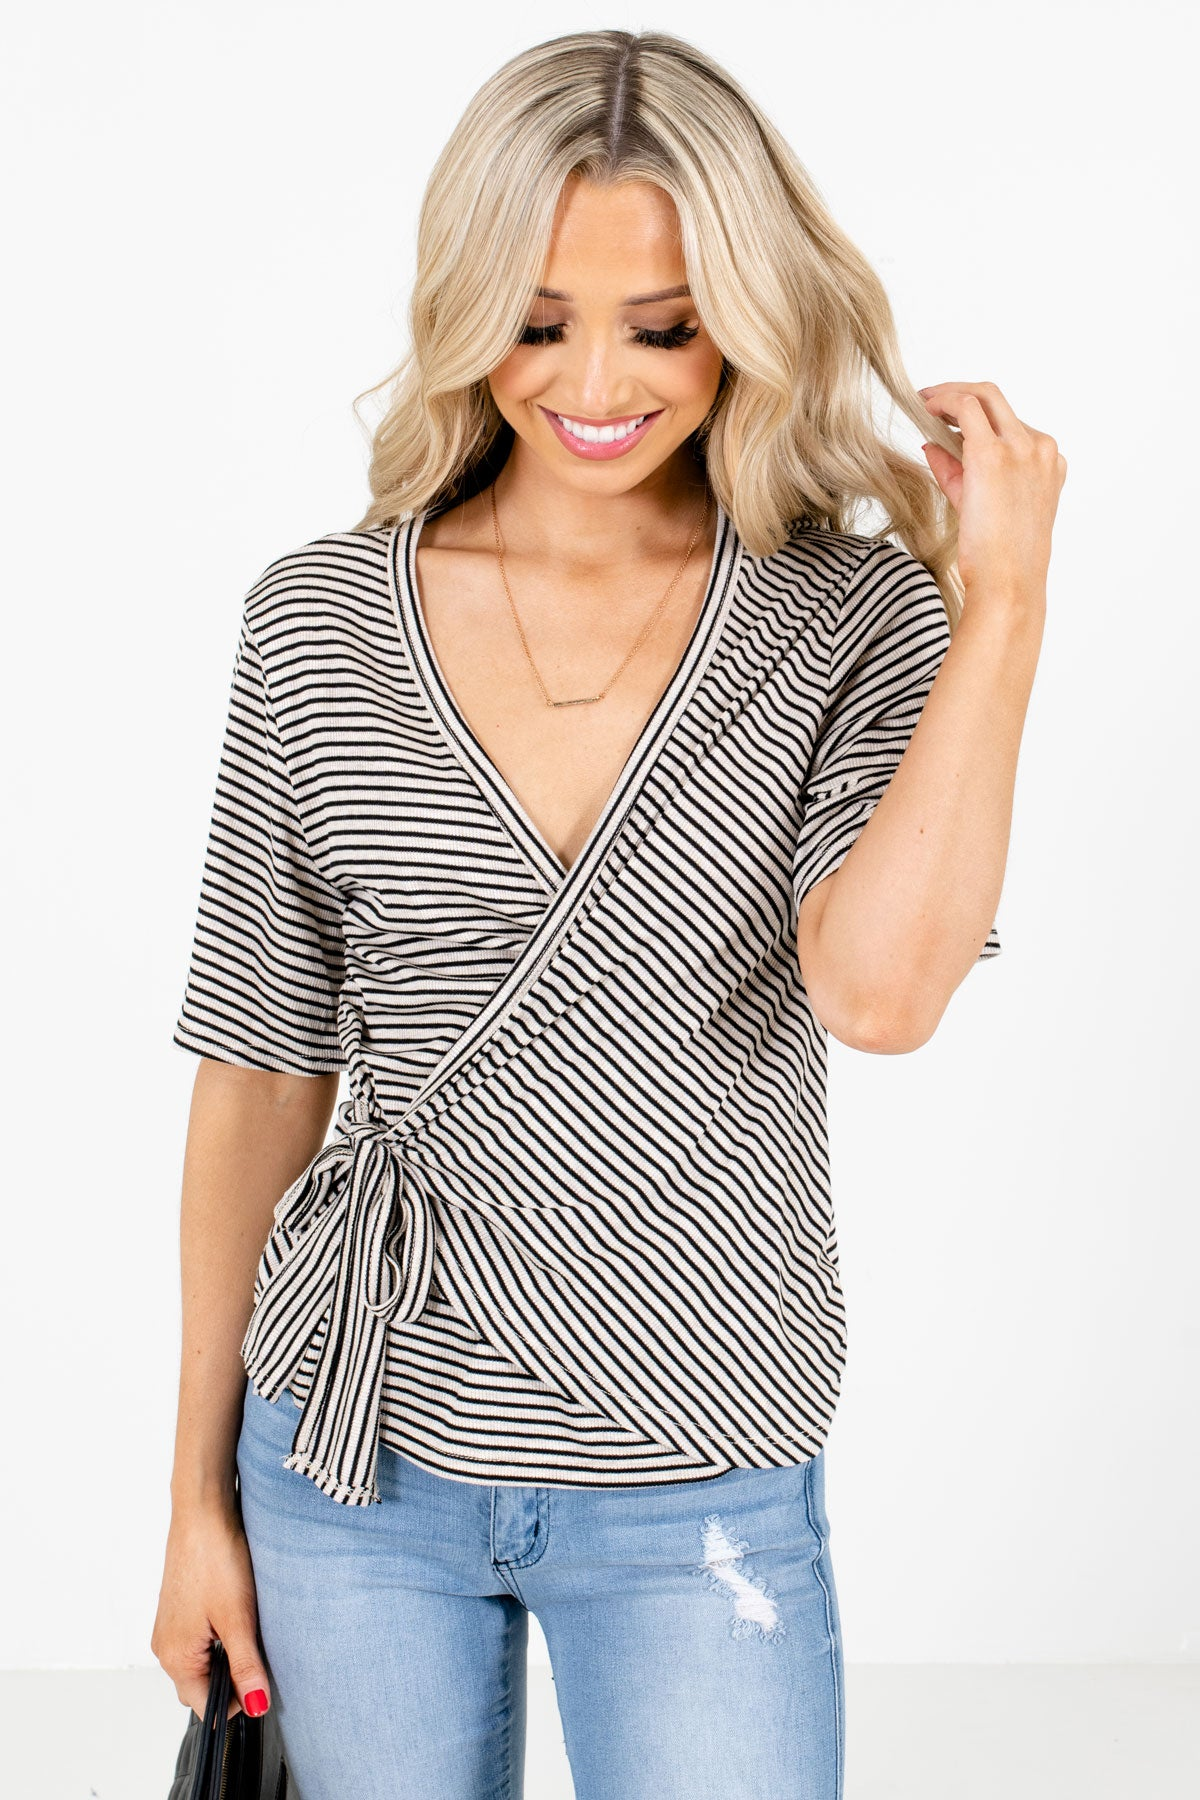 Beige and Black Striped Boutique Tops for Women